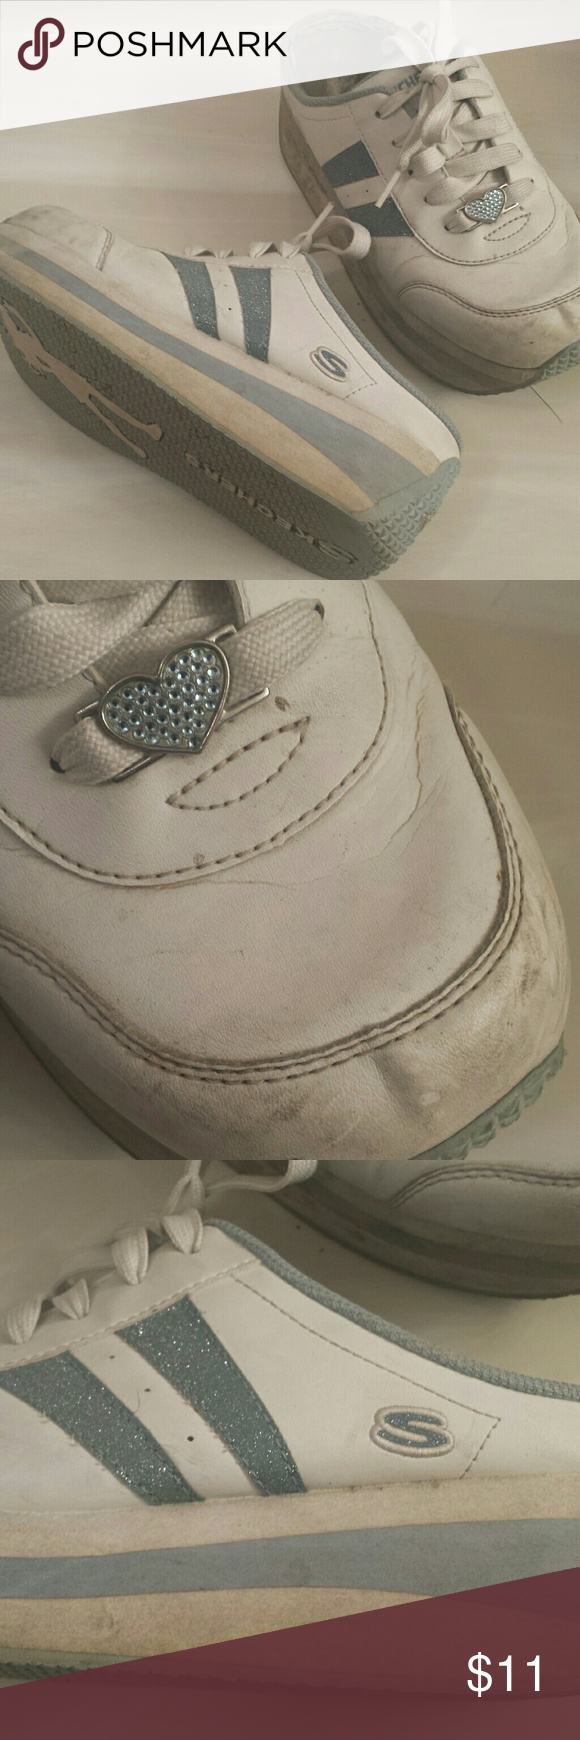 7b0fddfac45 Vintage 90s Skechers Worn Cute Platform Sneaker Vintage shoes from Skechers ...slip on platform sneaker...some rub at toes. ..previously owned but  classic ...